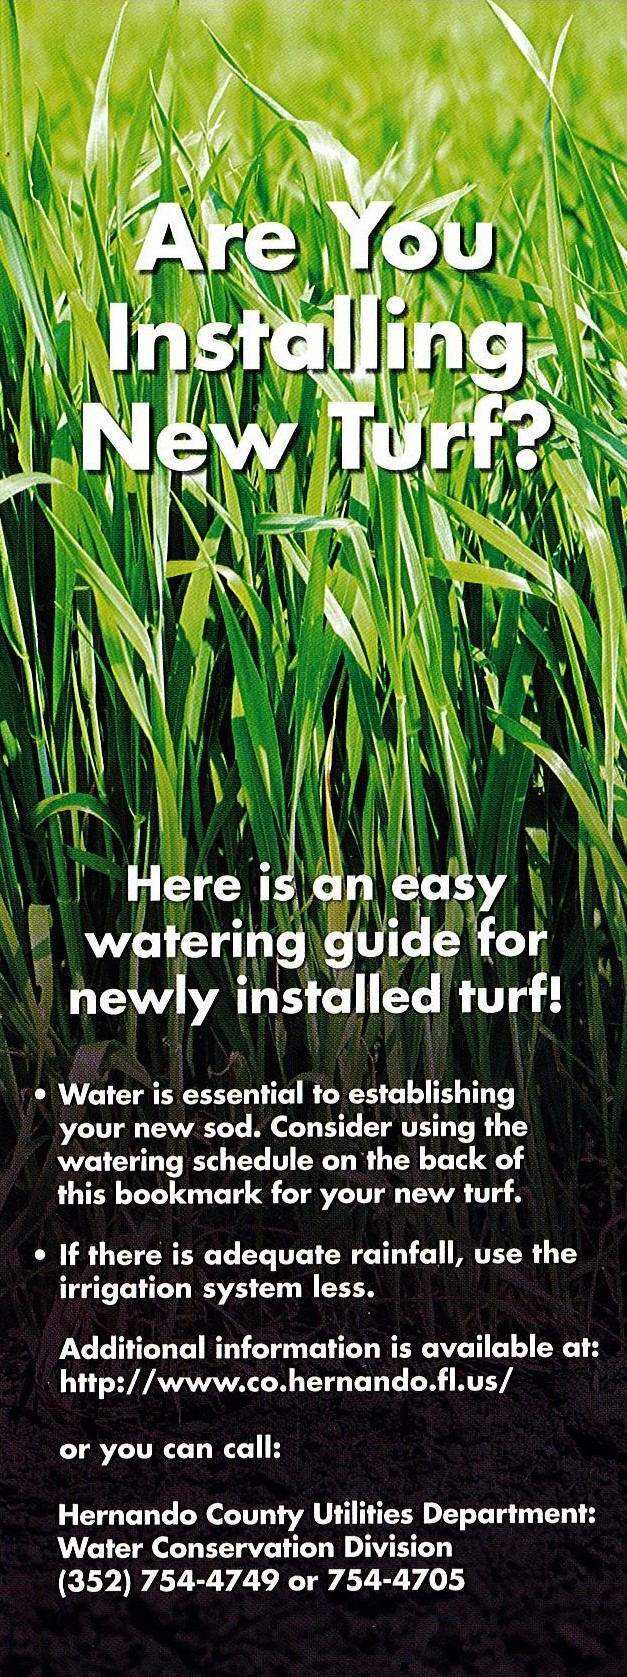 Watering Guide for Newly Installed Turf